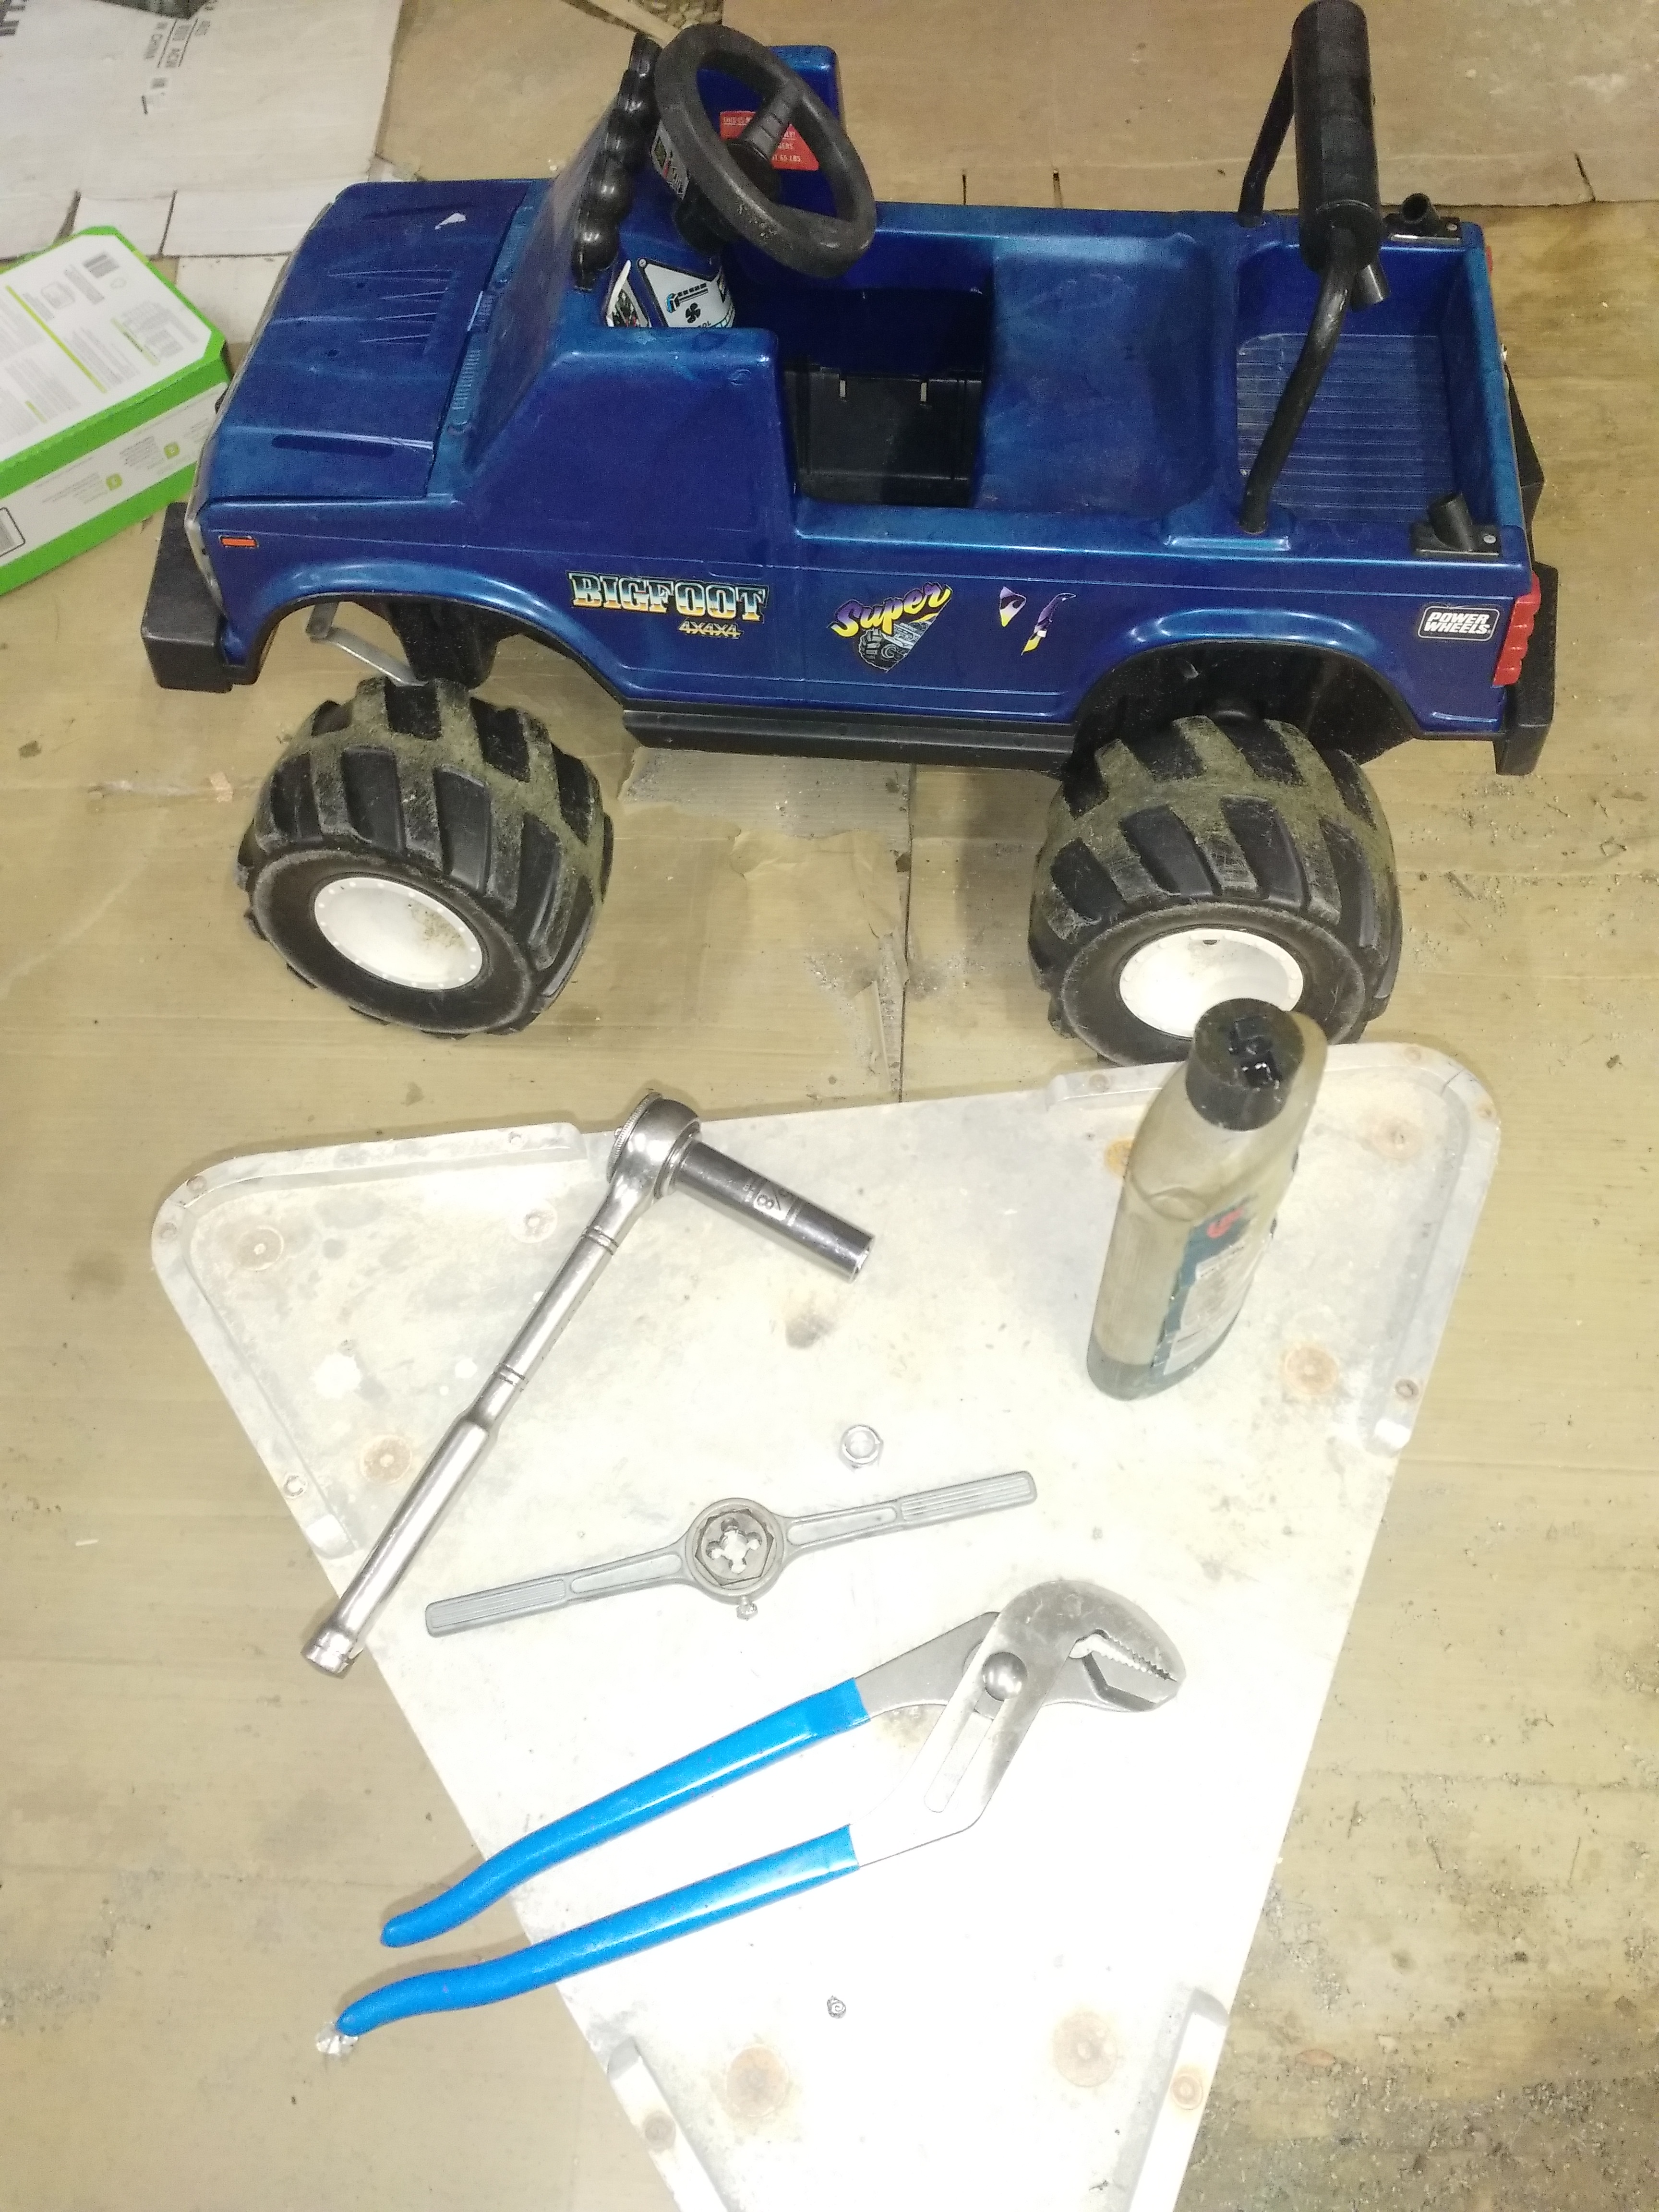 Picture of How to Thread the Axles on a Power Wheels Ride-on